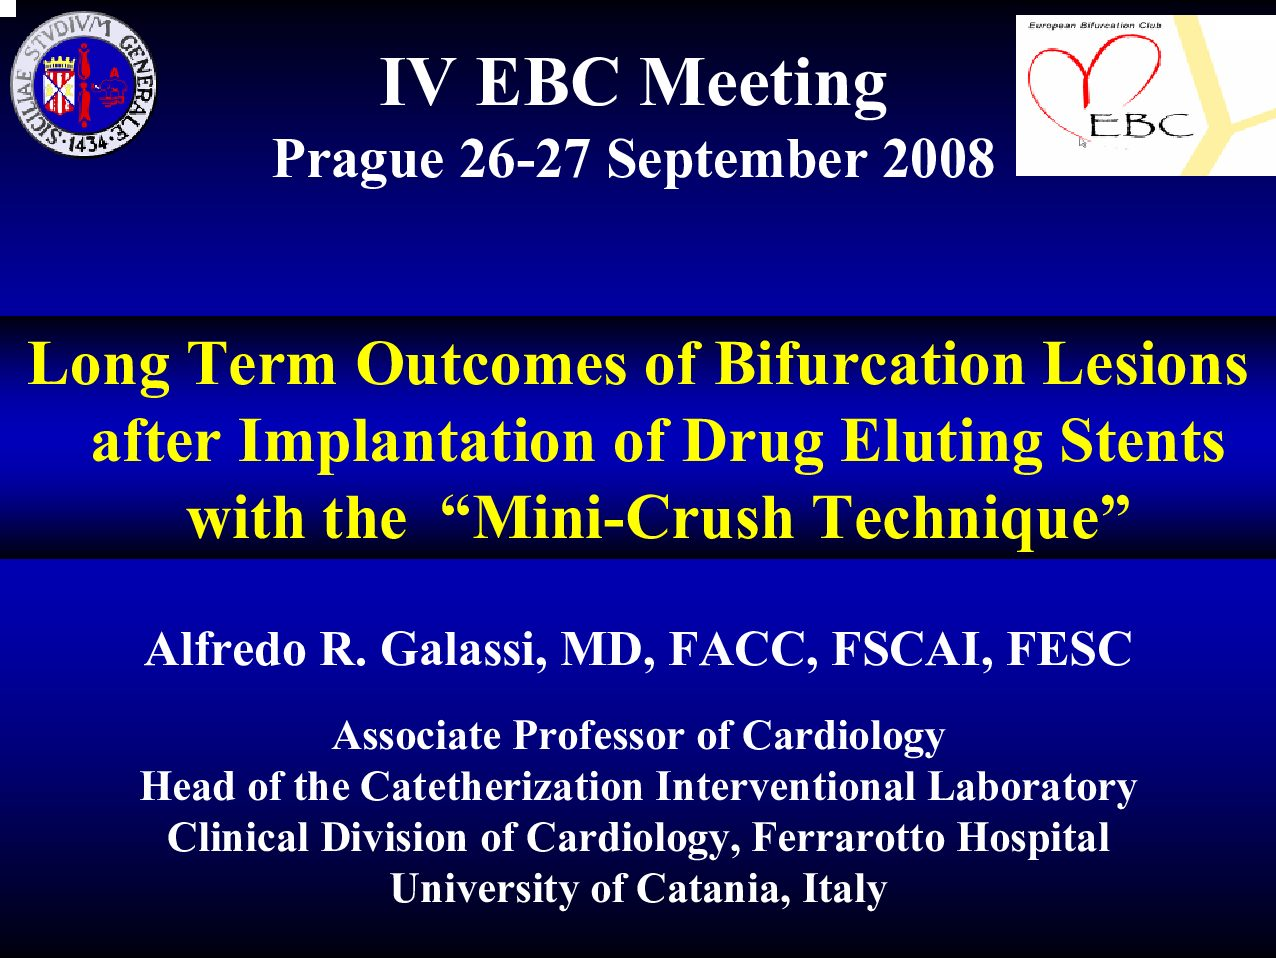 "Long Term Outcomes of Bifurcation Lesions after Implantation of Drug Eluting Stents with the ""Mini-Crush Technique"""